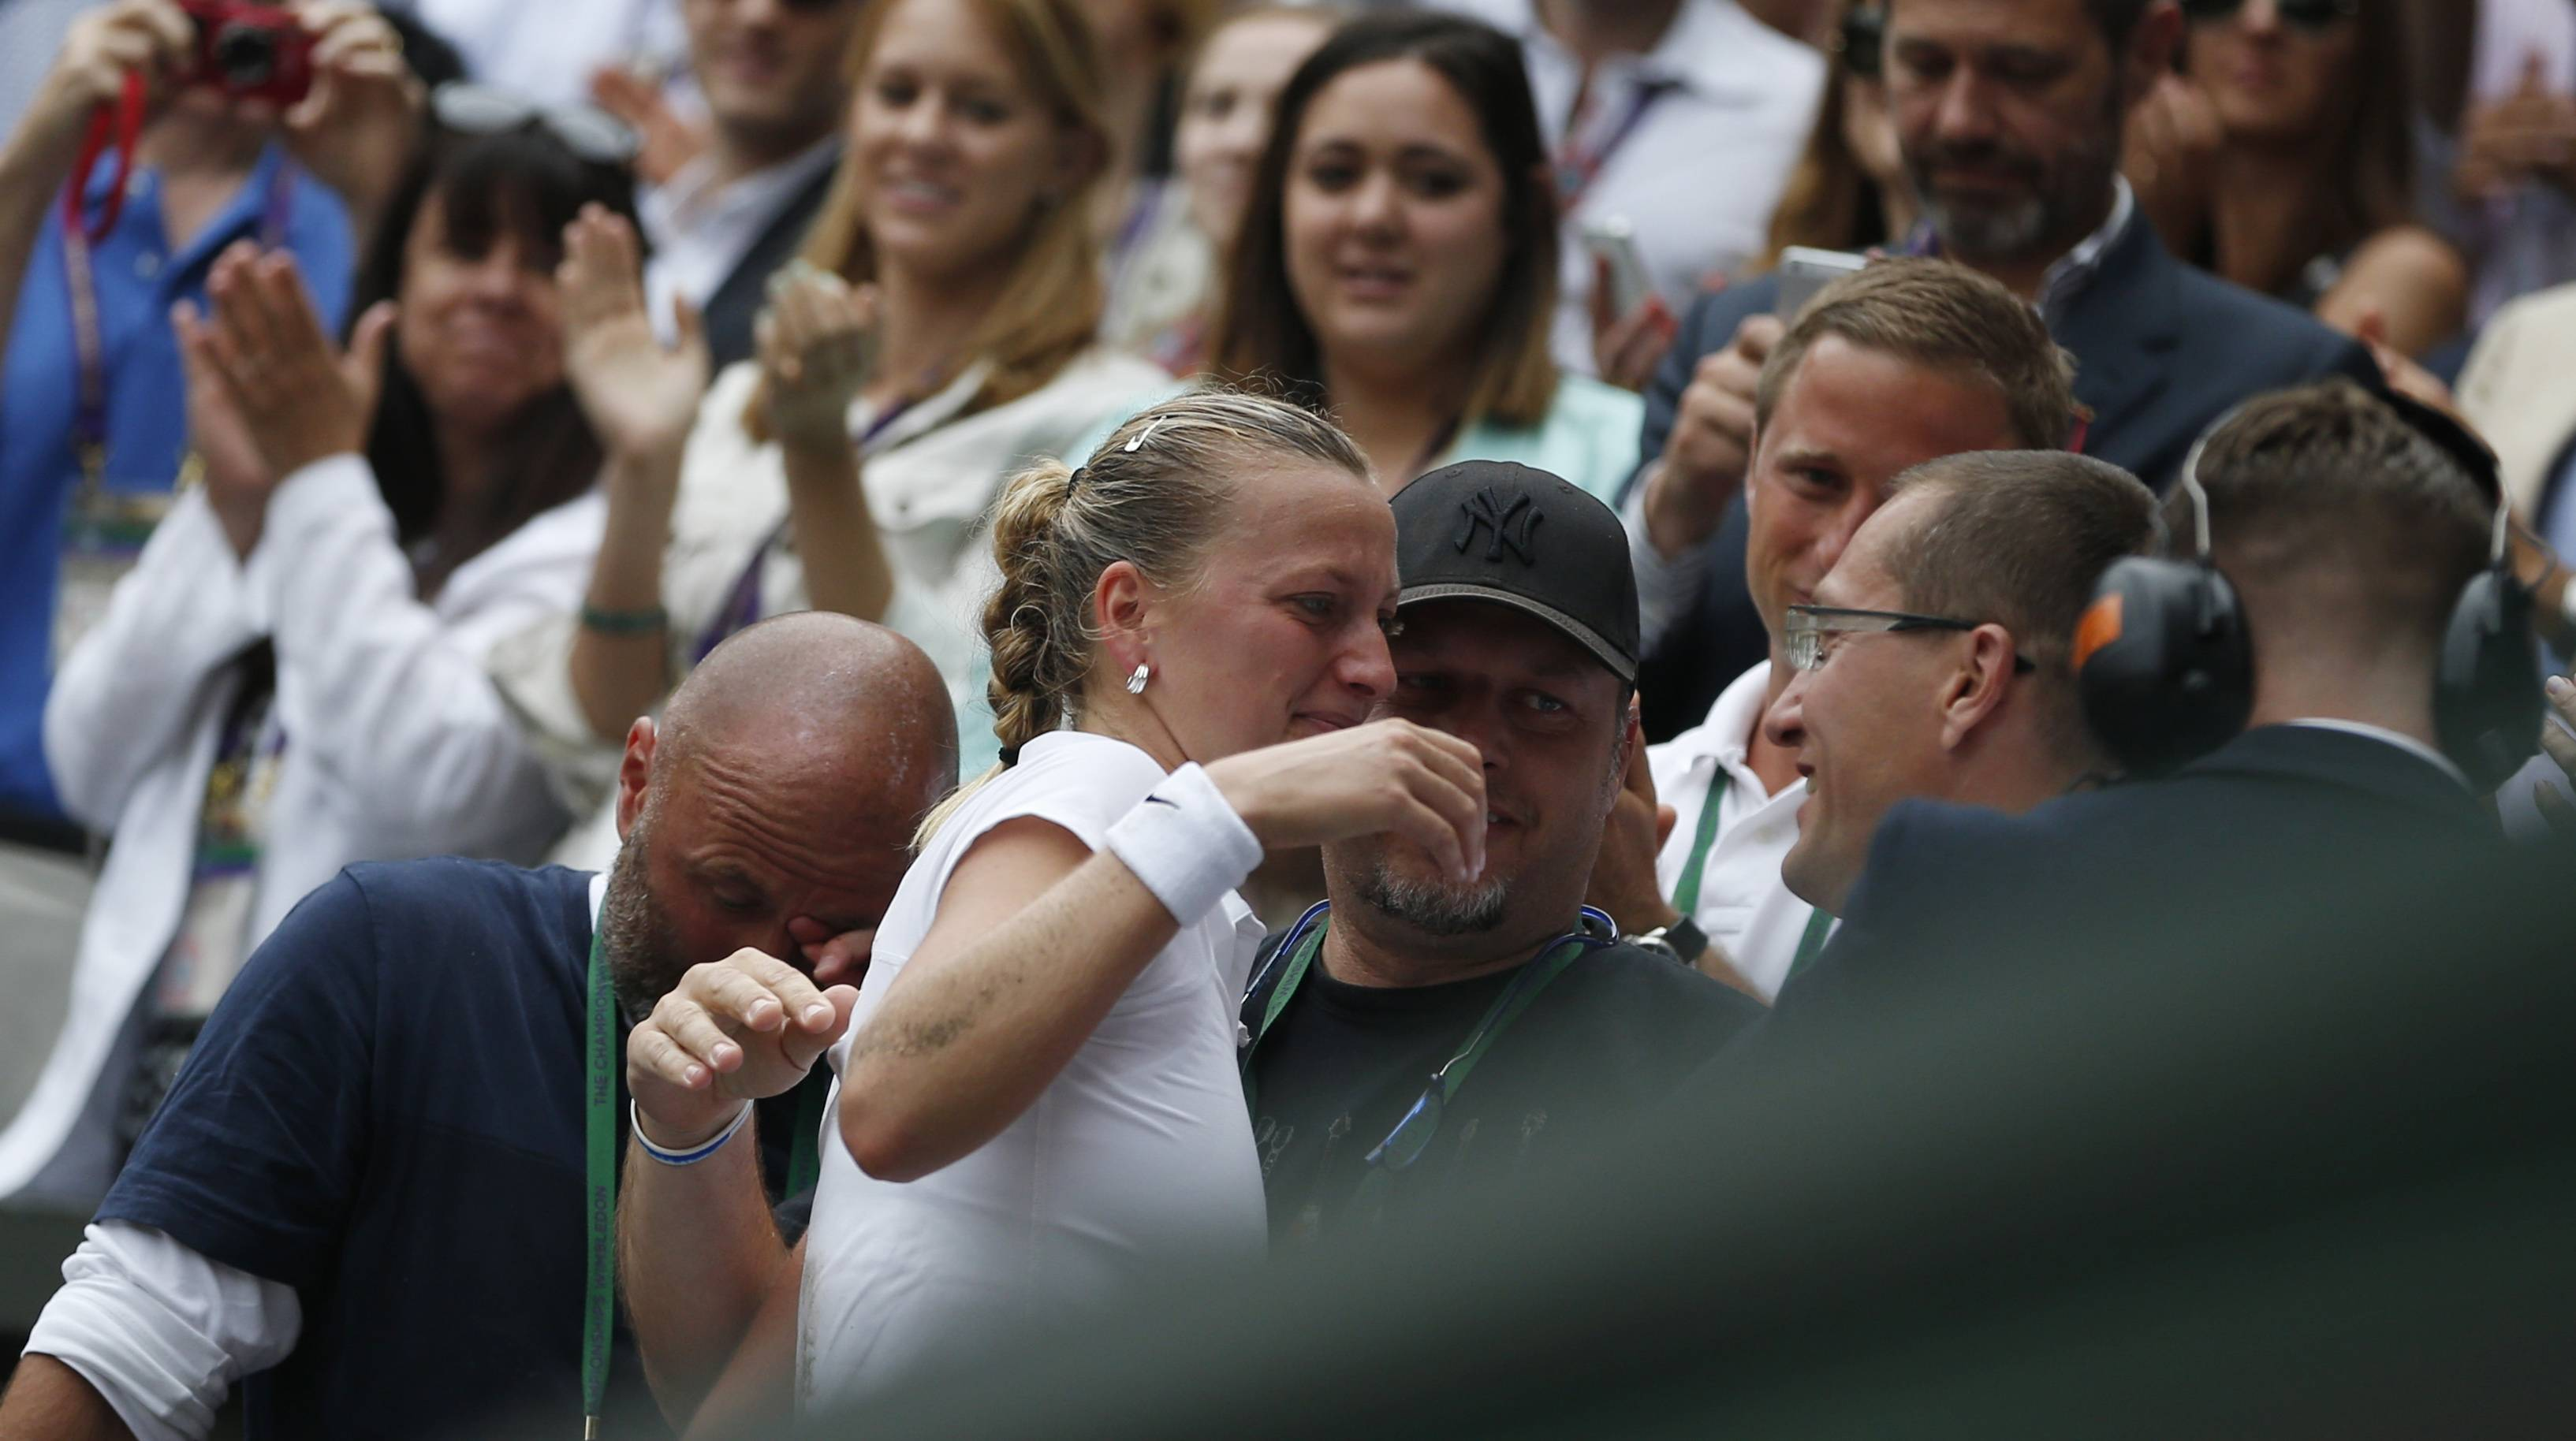 Petra Kvitova of Czech Republic embraces her family and friends in her players box as she celebrates defeating Eugenie Bouchard of Canada in their women's singles final at the All England Lawn Tennis Championships in Wimbledon, London, Saturday July 5.